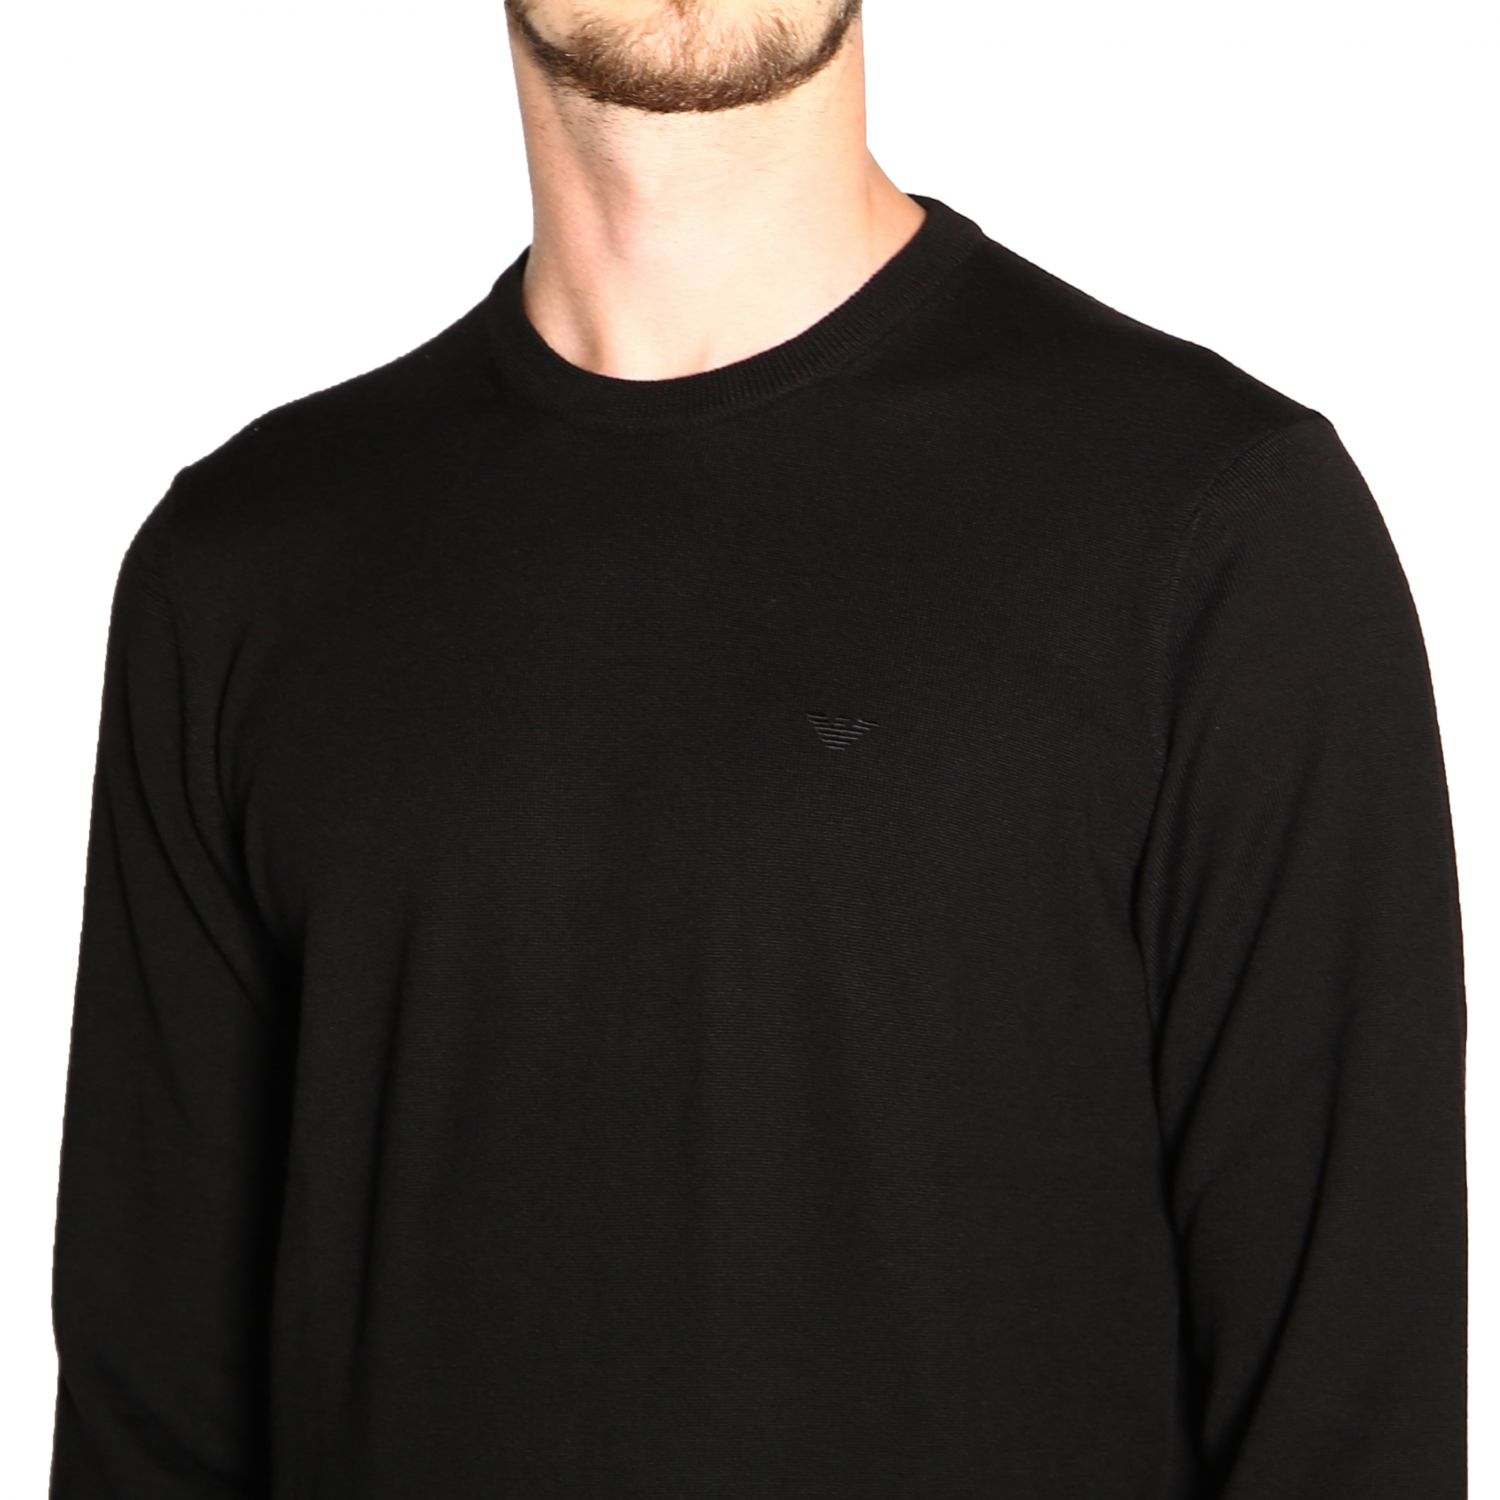 Emporio Armani long-sleeved crew neck sweater in wool black 5